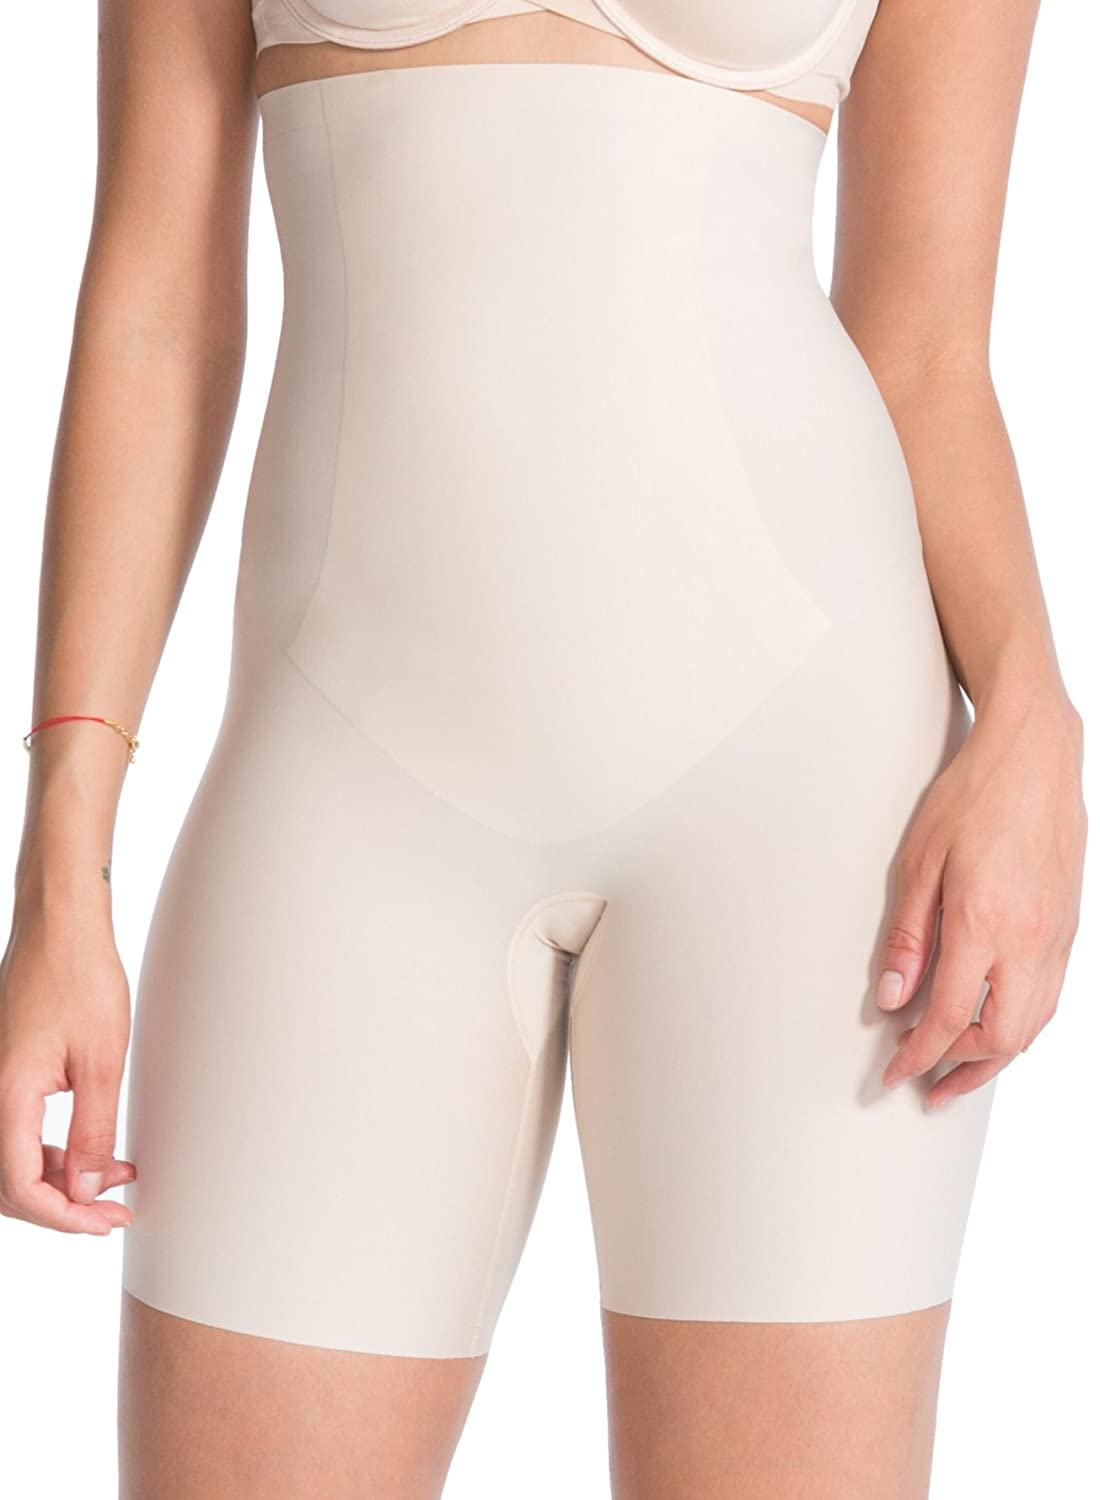 Spanx Deluxe Slimming Shapewear Thinstincts High-Waisted Mid-Thigh Shorts, Very Black Soft Nude 10006r